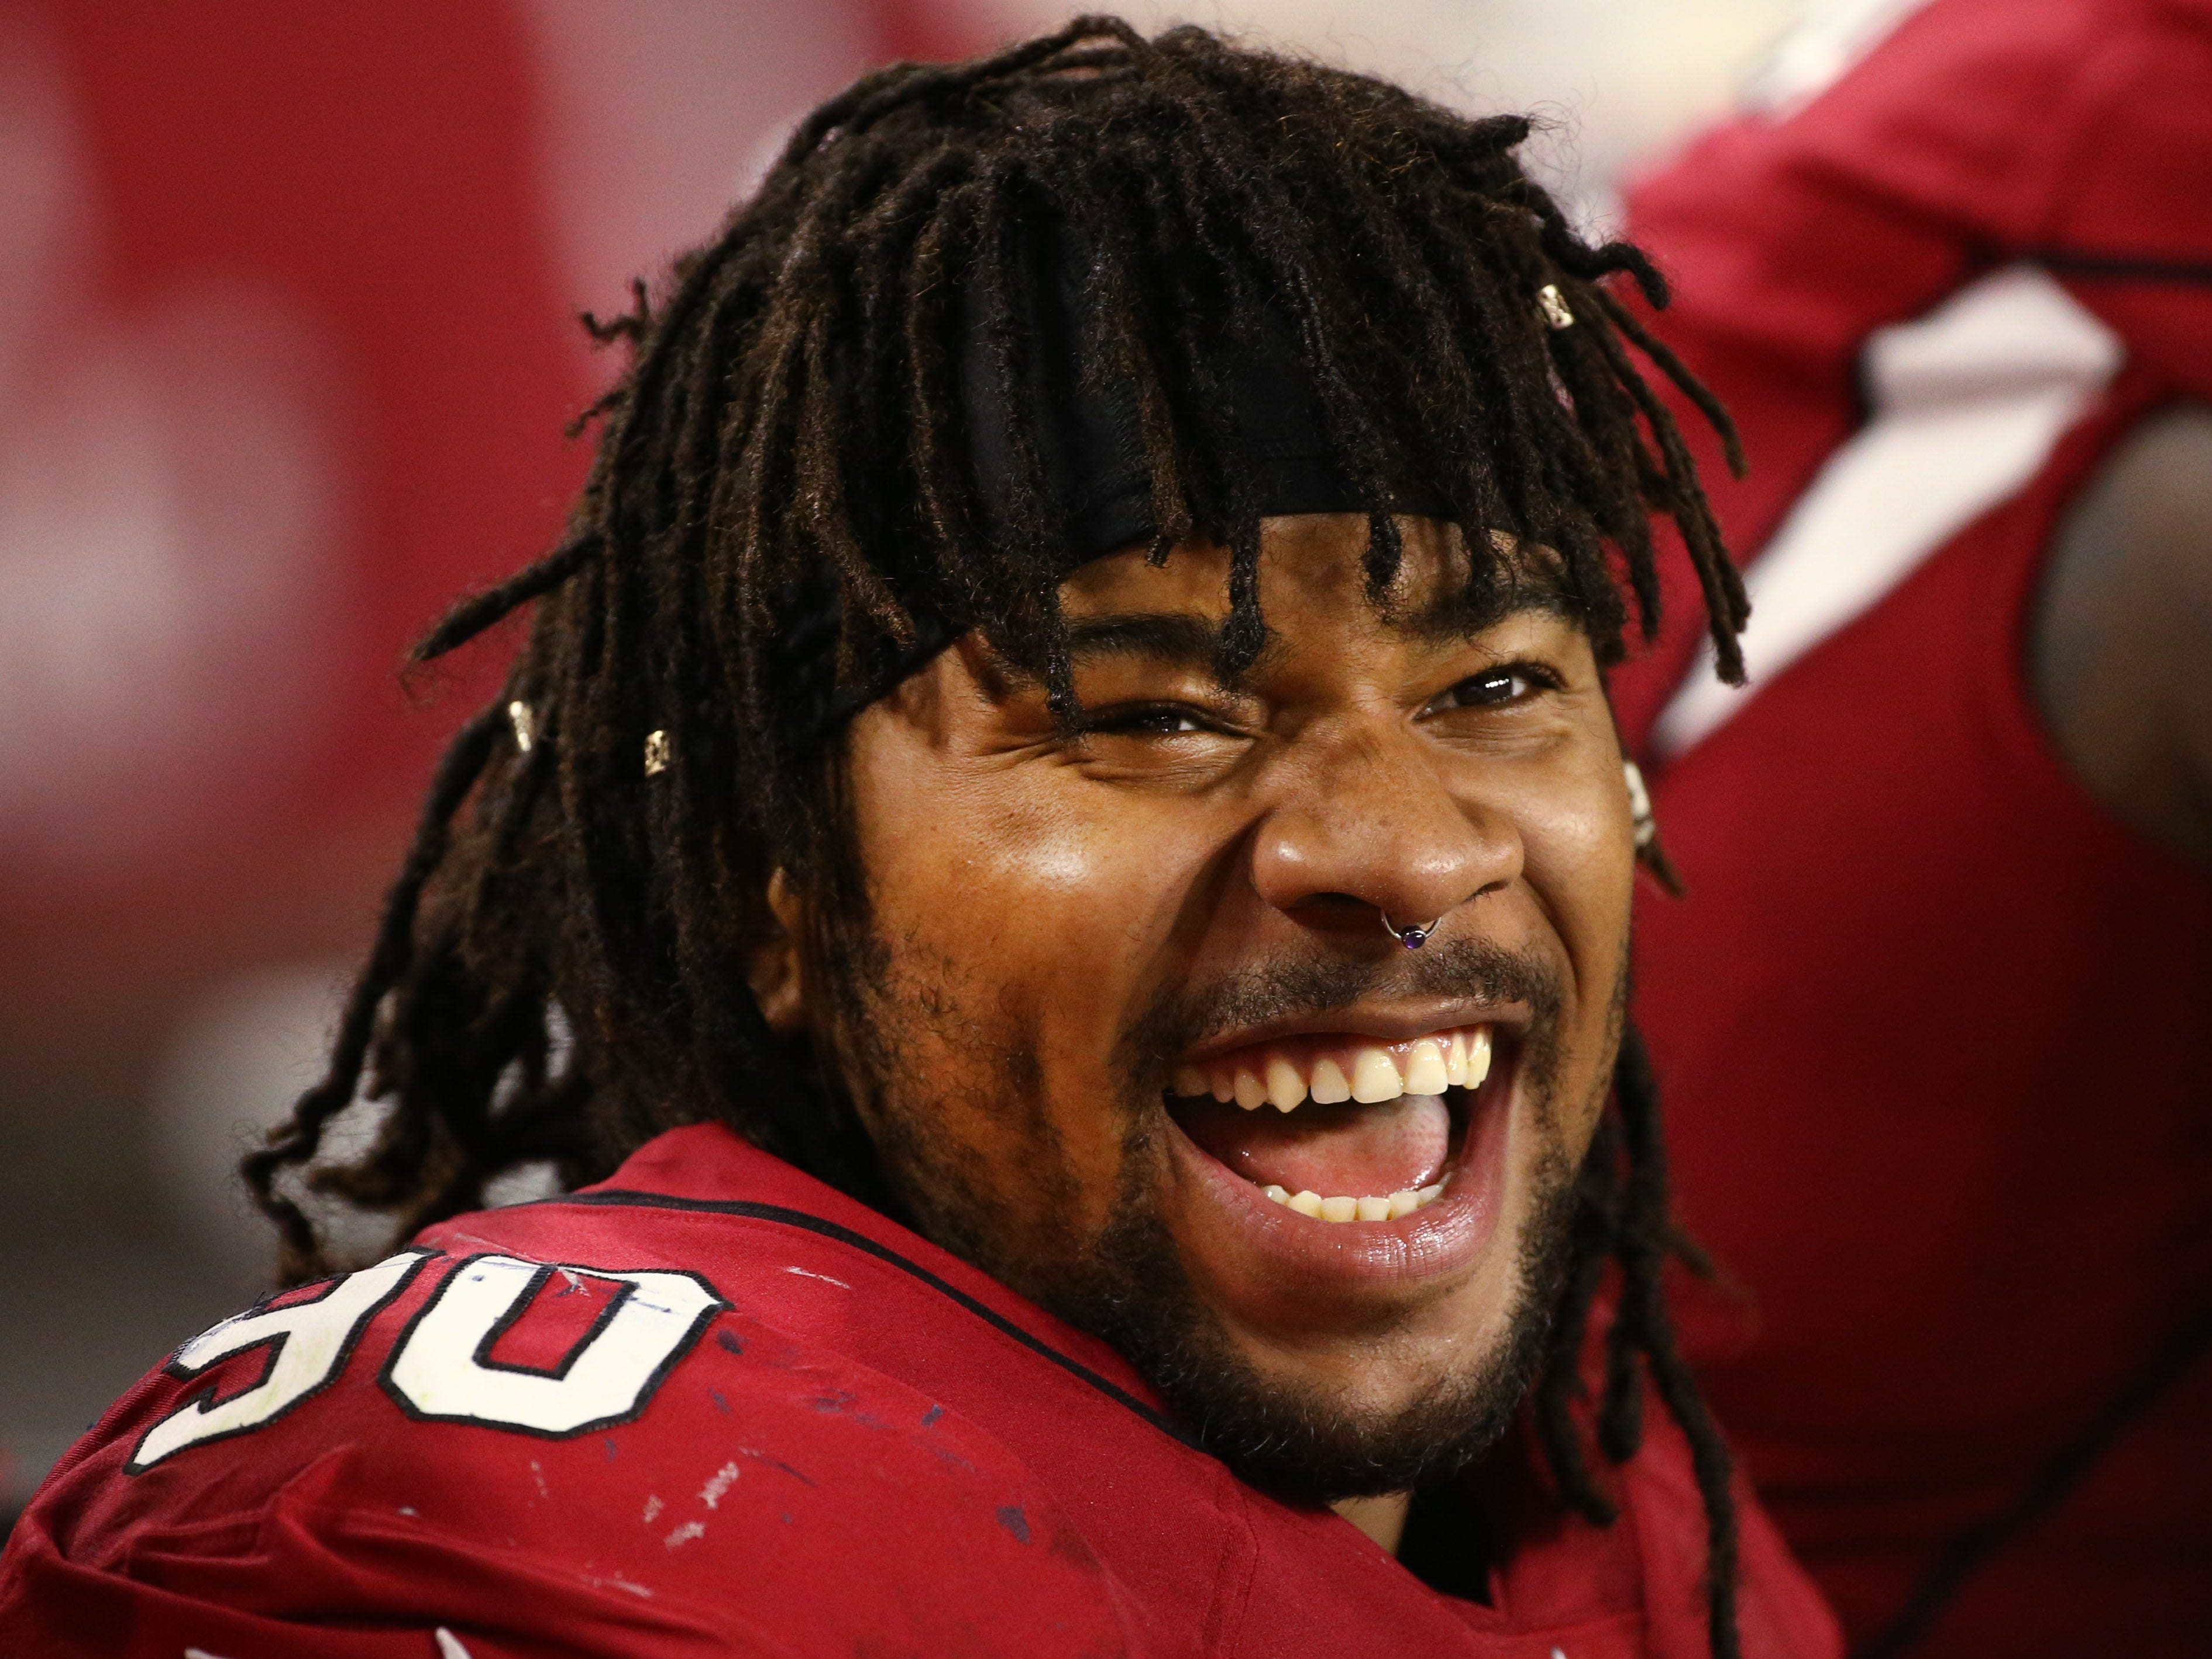 Arizona Cardinals Robert Nkemdiche sings on the sidelines against the L.A. Chargers in the first half during a preseason NFL football game on Aug. 11, 2018 at University of Phoenix Stadium in Glendale, Ariz.